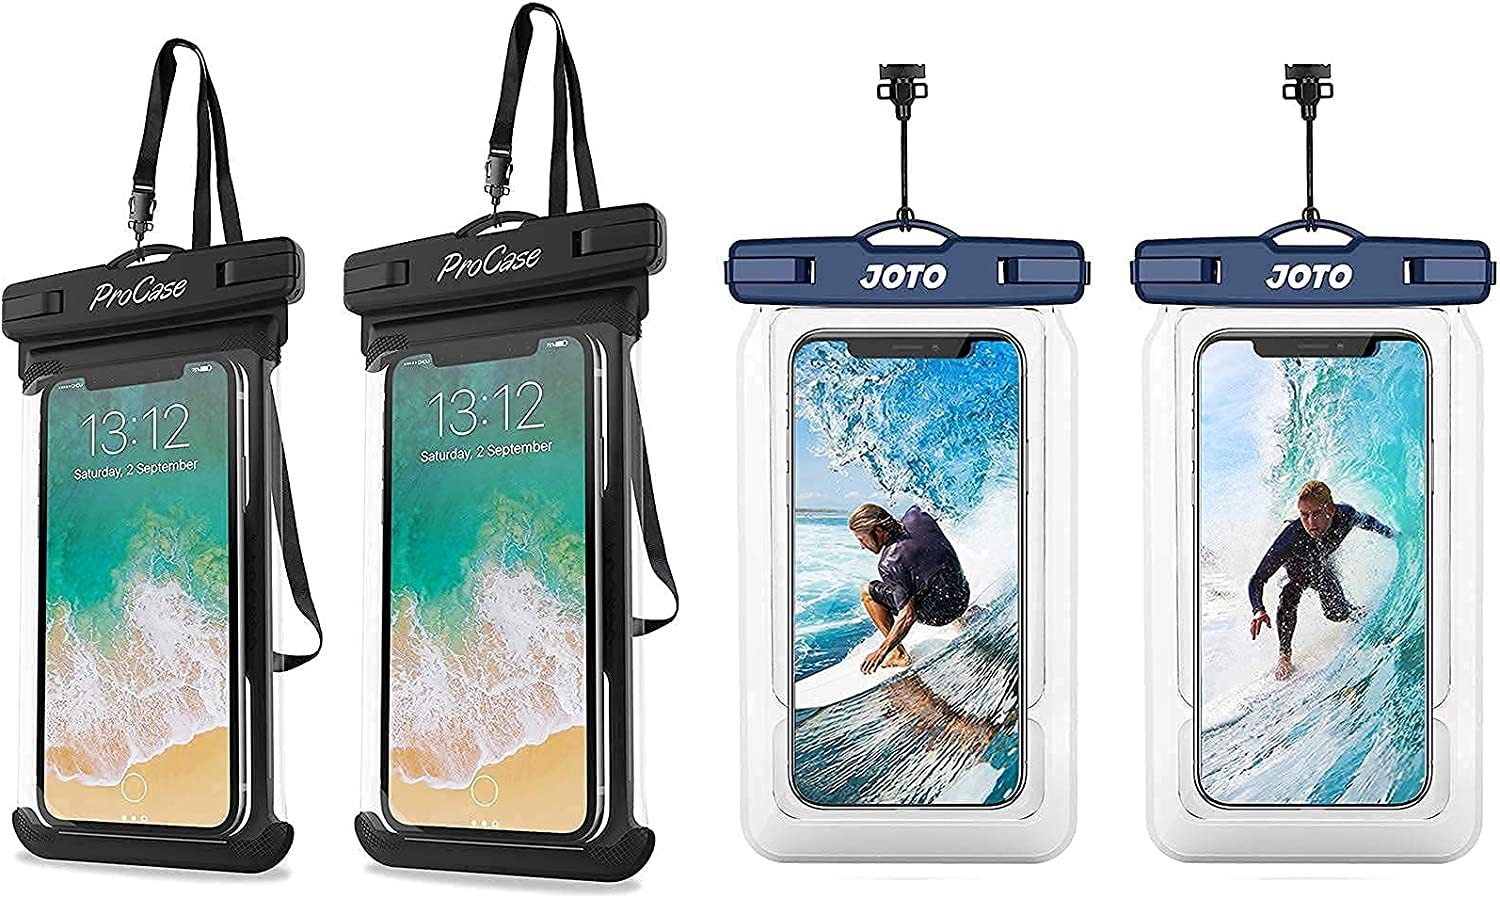 ProCase Universal Waterproof Case Cellphone Dry Bag Bundle with JOTO Floating Waterproof Phone Pouch